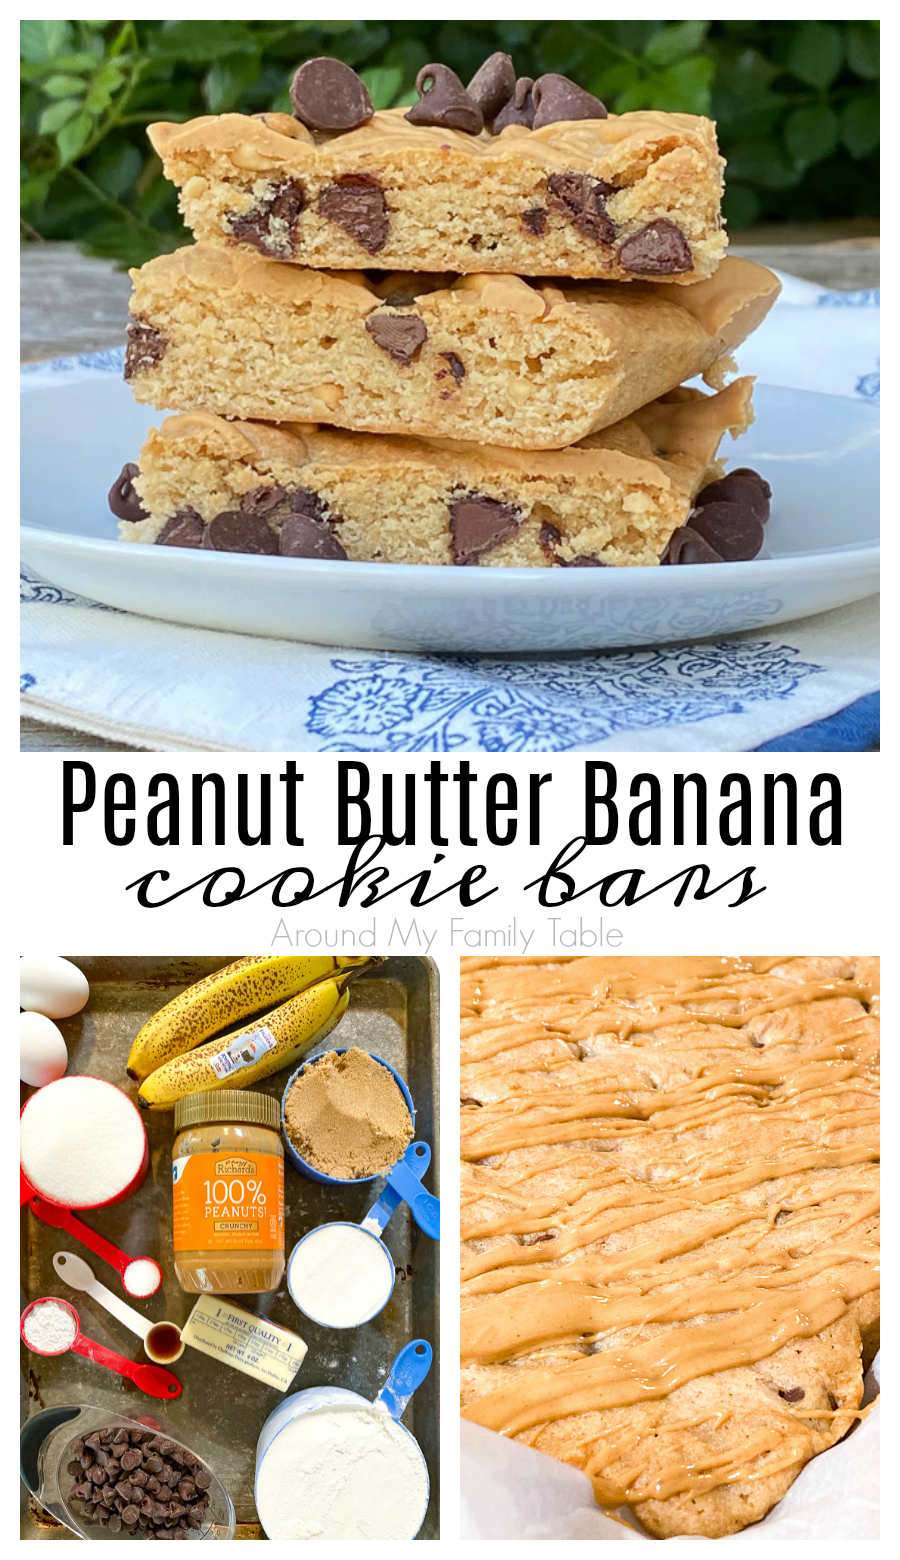 Peanut Butter Banana Cookie Bars are the perfect blend of peanut butter, banana, and chocolate chips in a moist, cake-like cookie bar made with pantry staples.  It's the perfect after school snack or dessert. via @slingmama